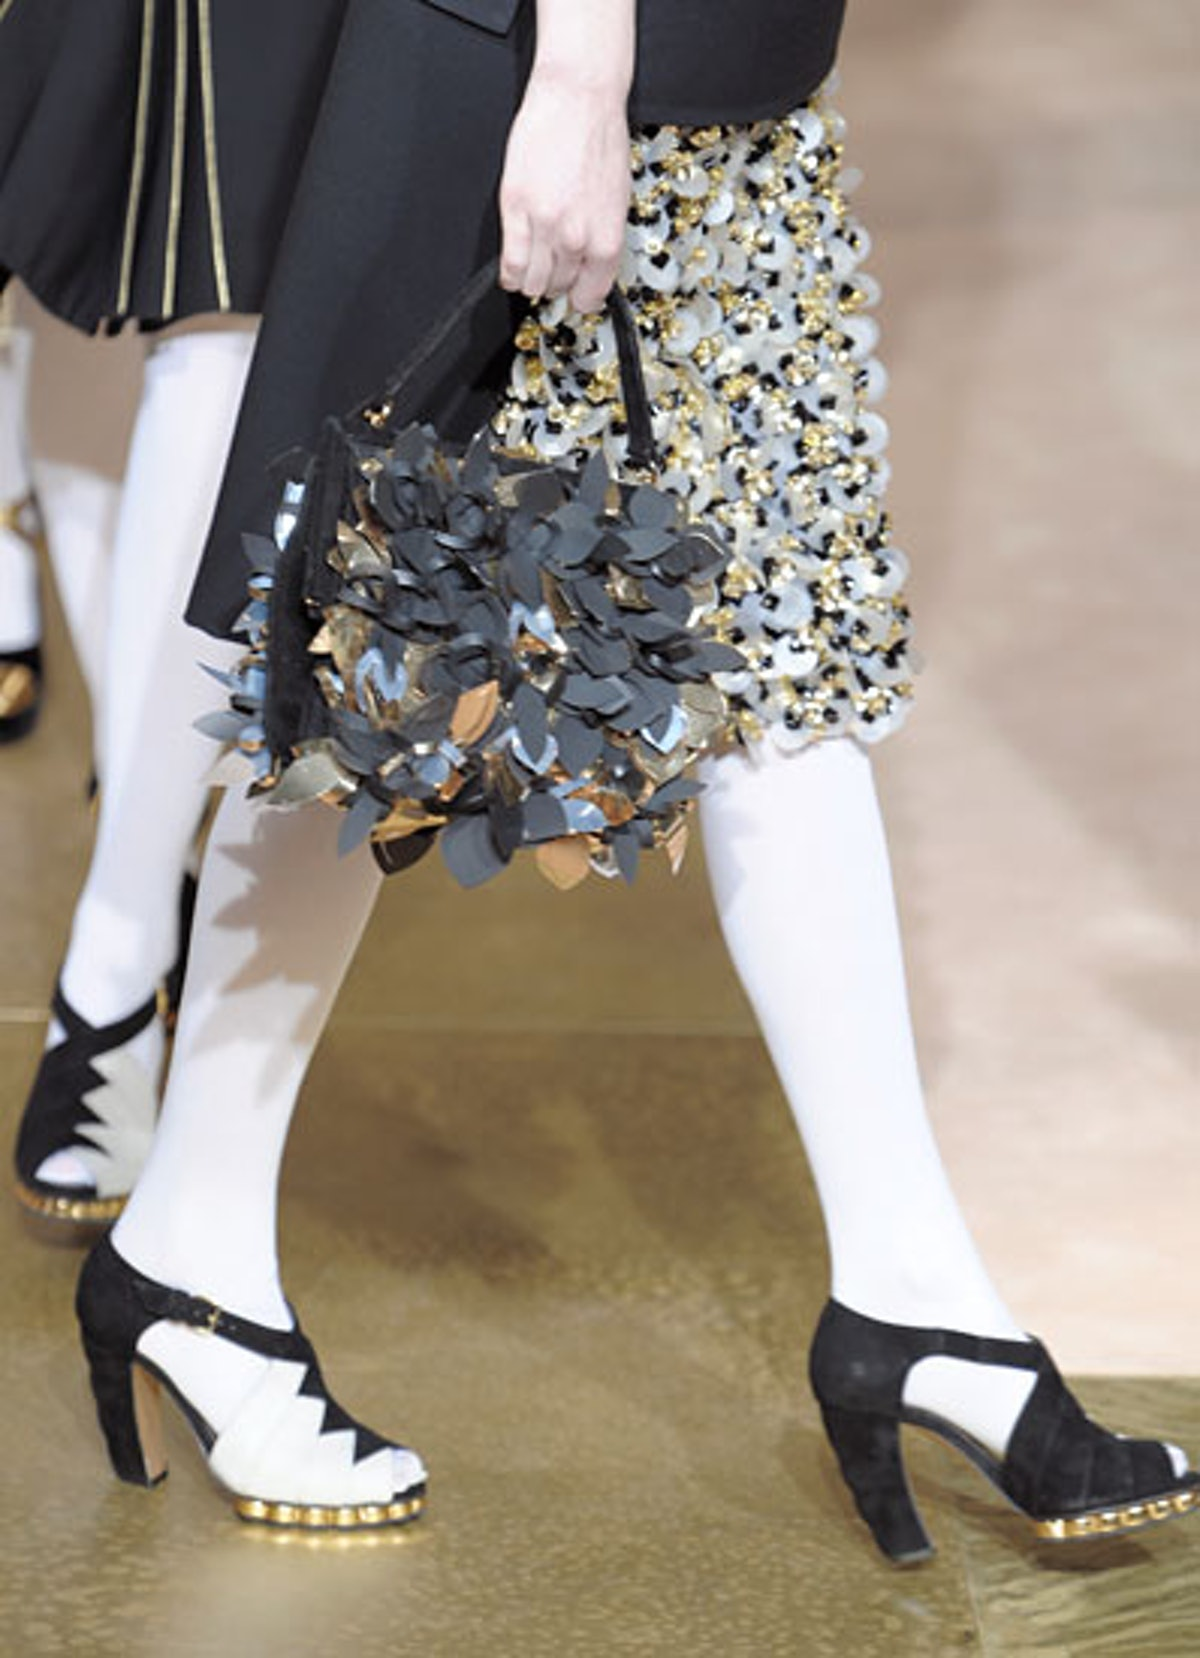 acss-fall-2012-accessories-roundup-18-v.jpg